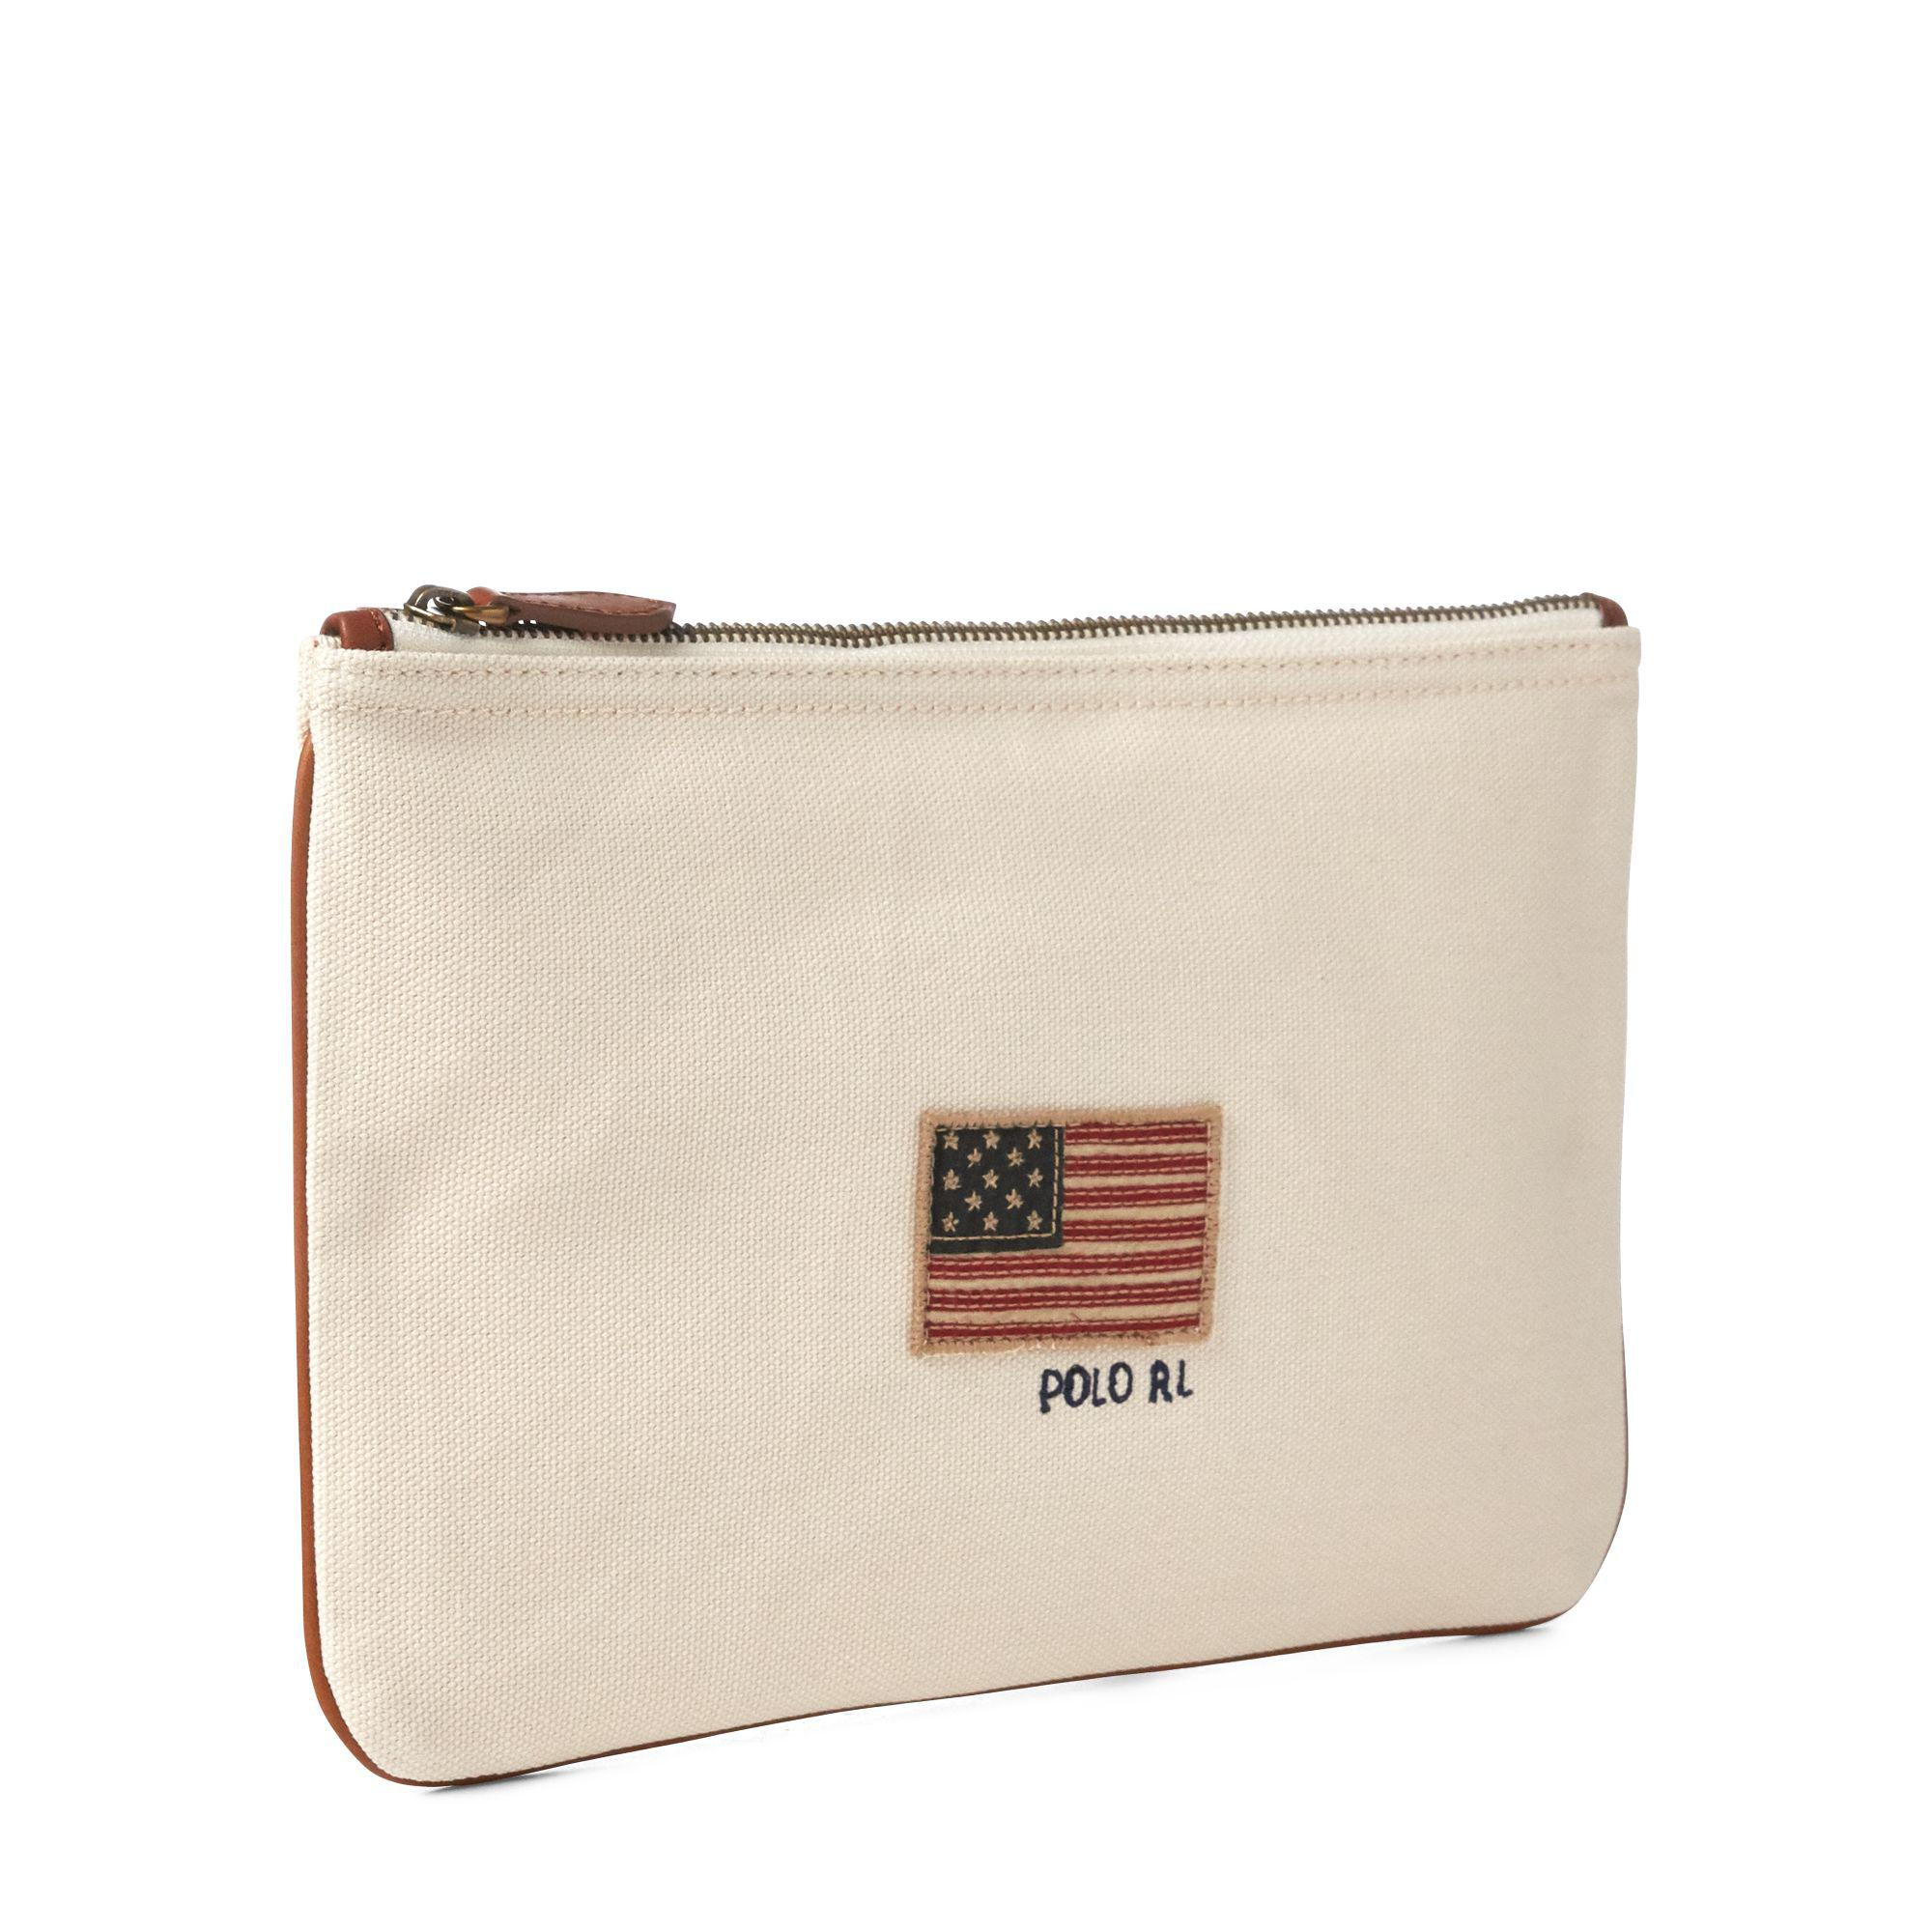 641b23d029 Lyst - Polo Ralph Lauren Flag Canvas Small Pouch in Natural